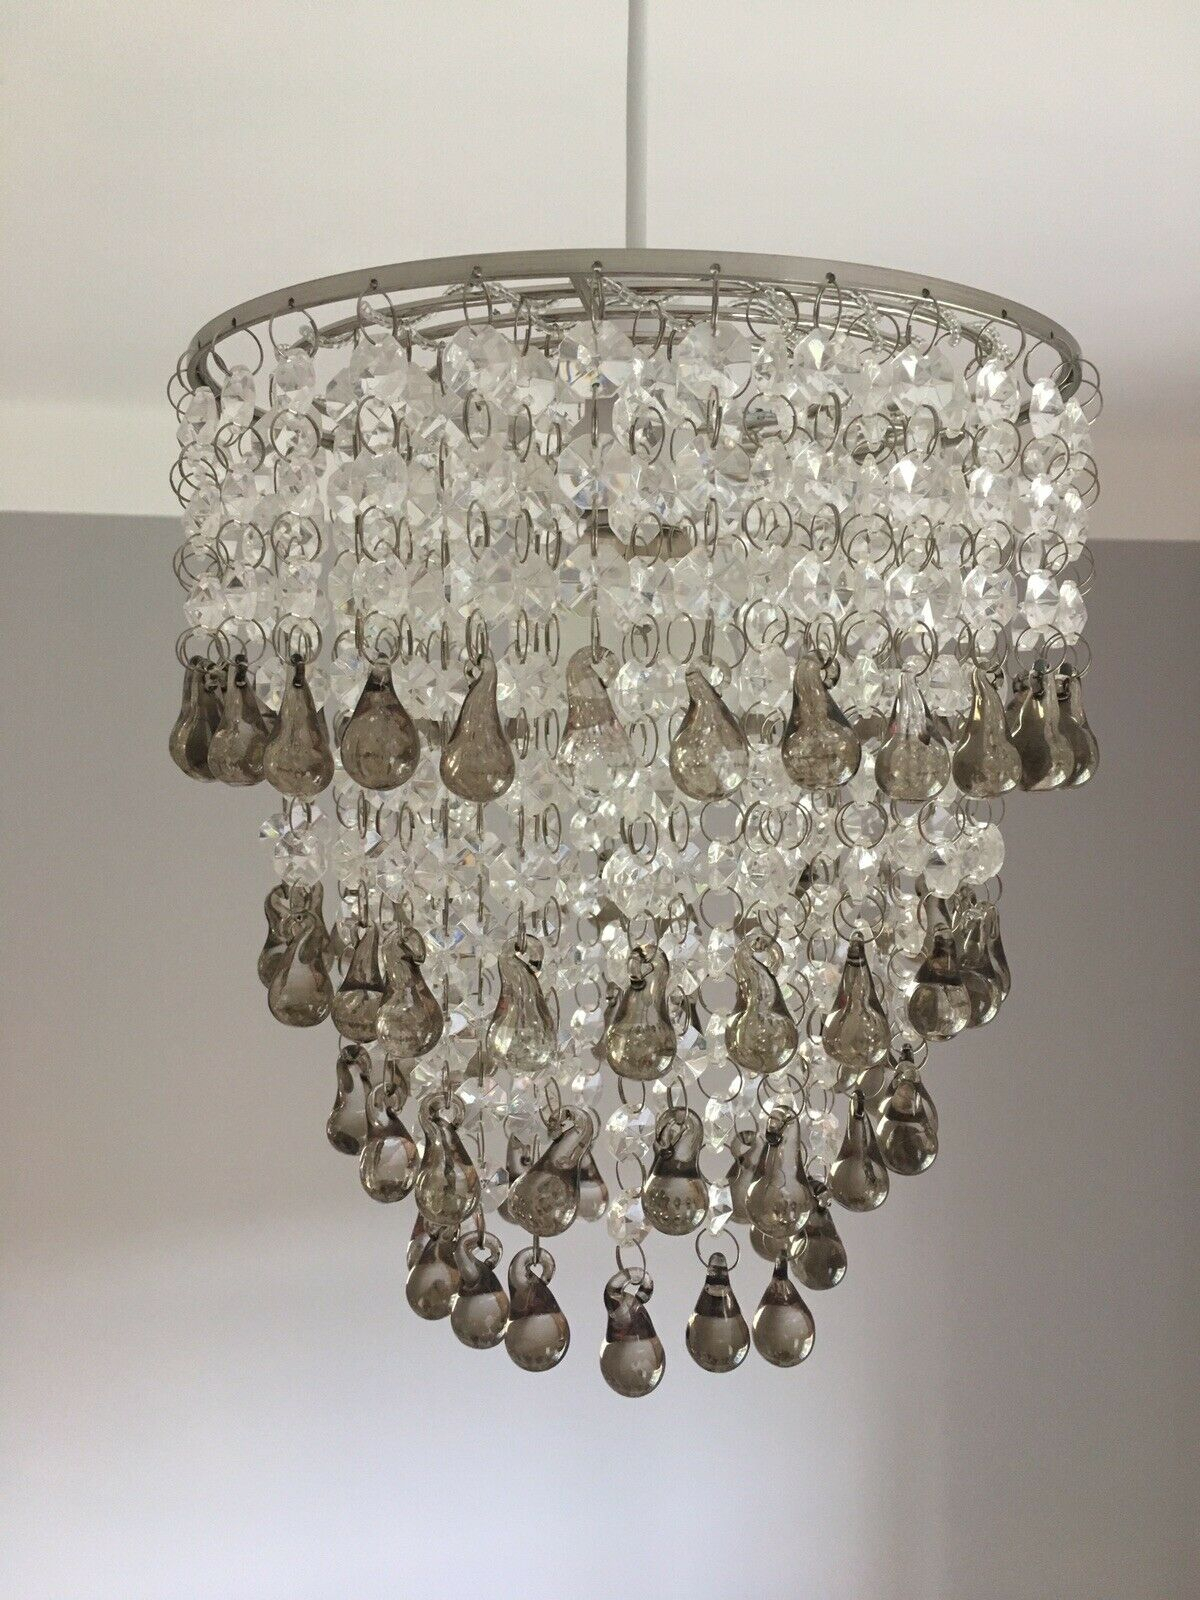 Laura Ashley 'Carmen' Easy Fit Chandelier / Pendant With Smoked Glass  Droplets intended for Sinead 4-Light Chandeliers (Image 21 of 30)